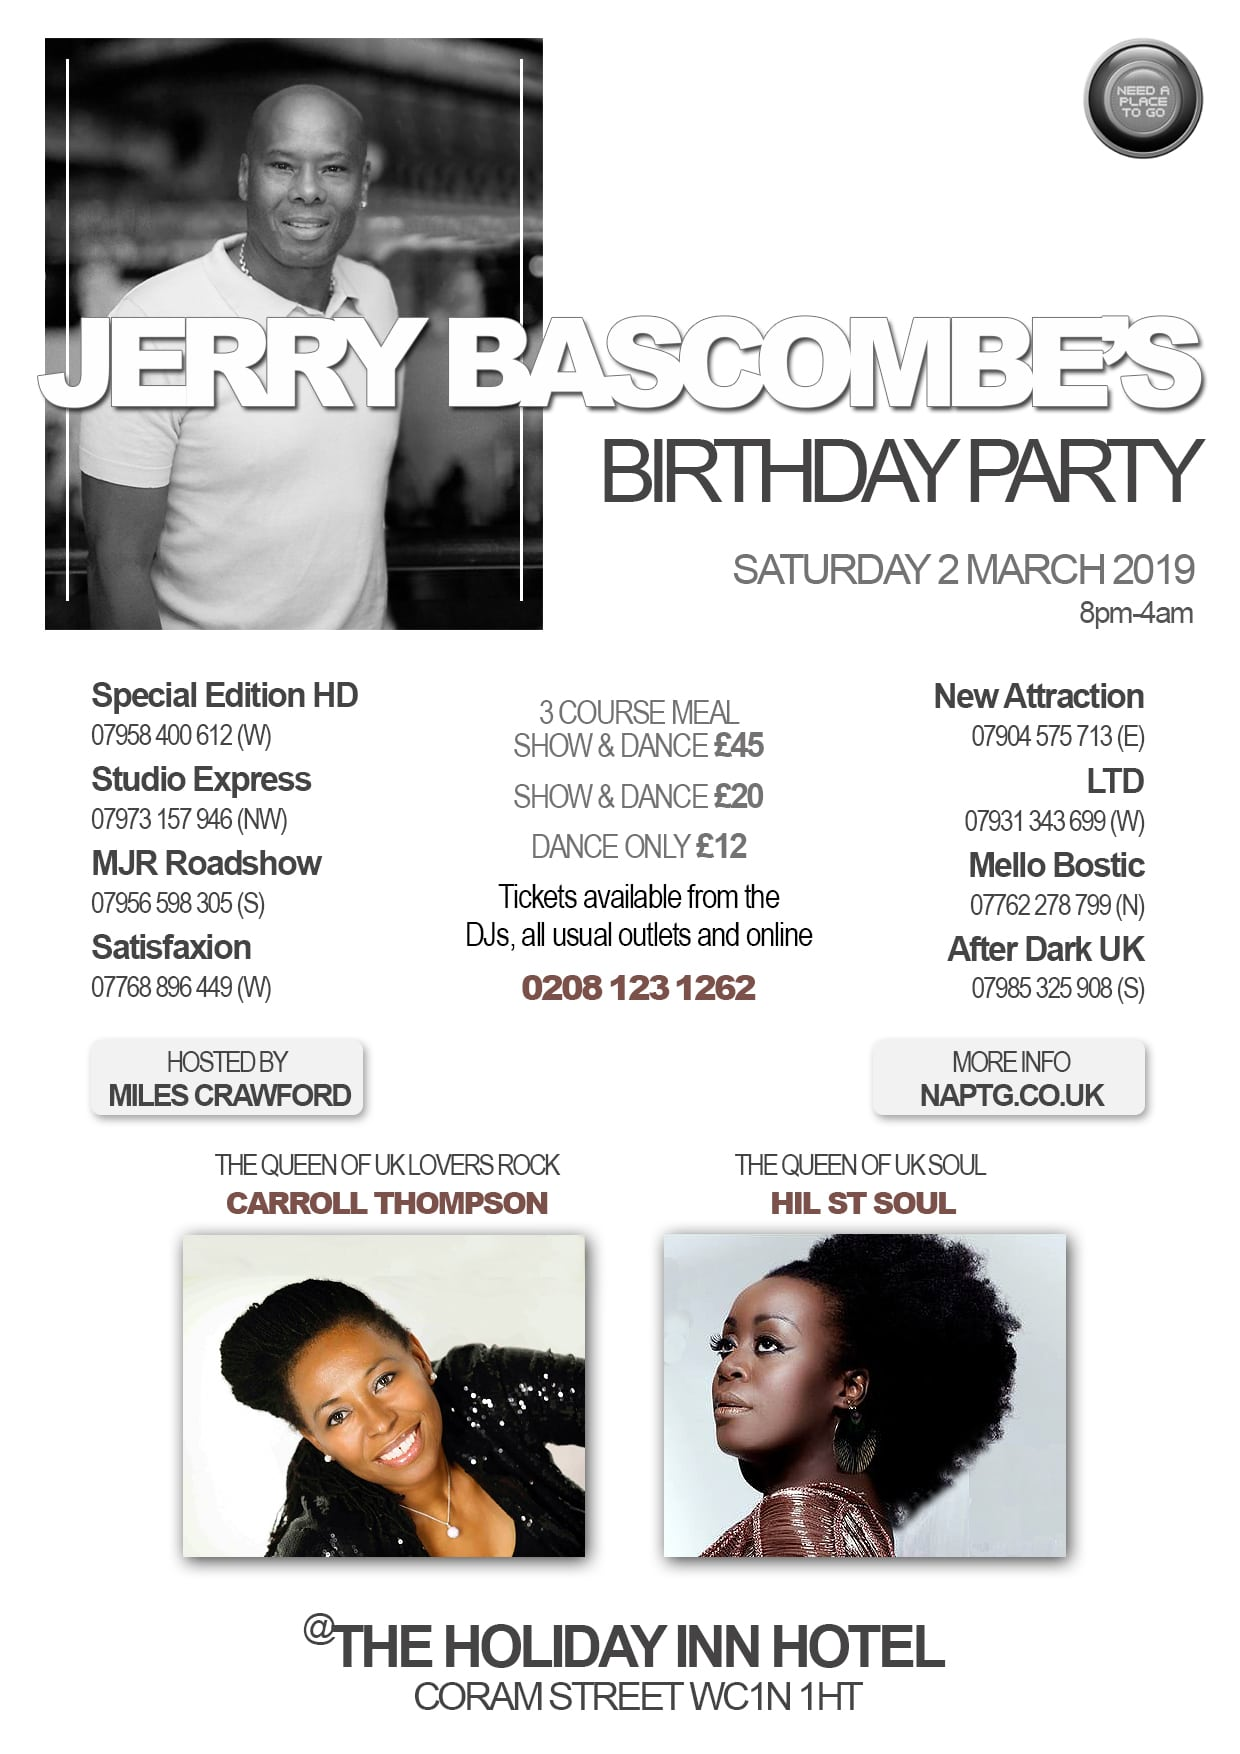 You're invited to Jerry Bascombe's Birthday Party 2019